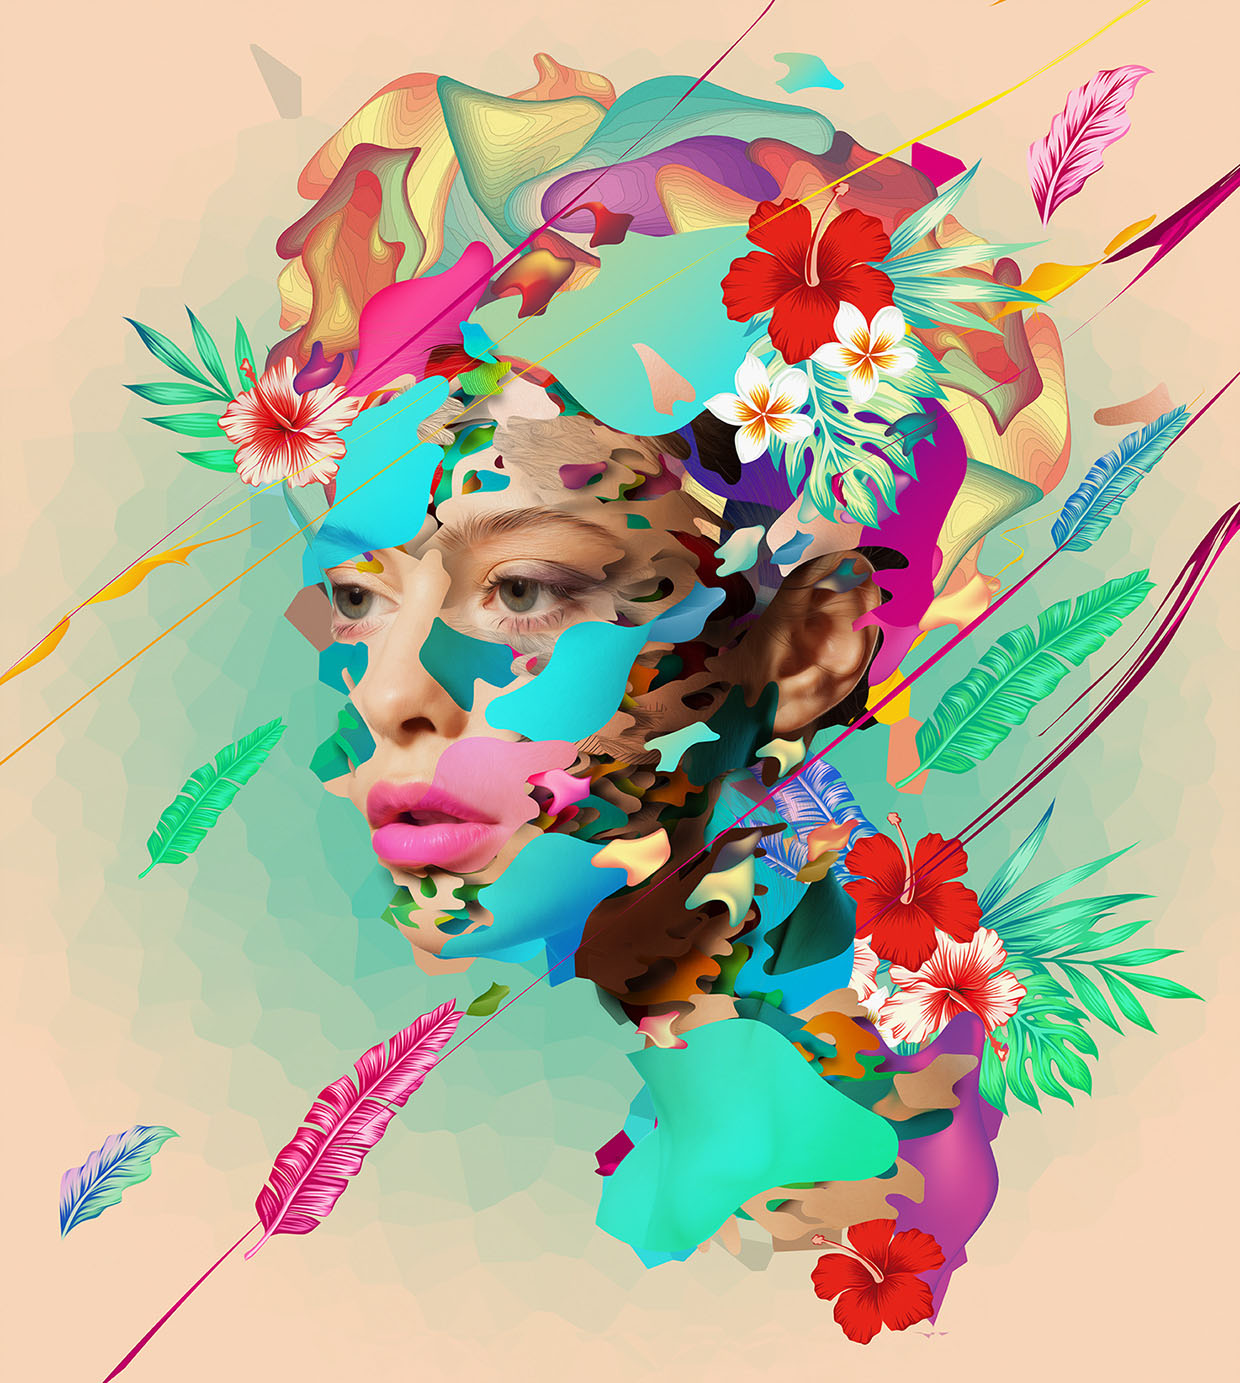 Raster and Vector Illustrations from Alberto Seveso.